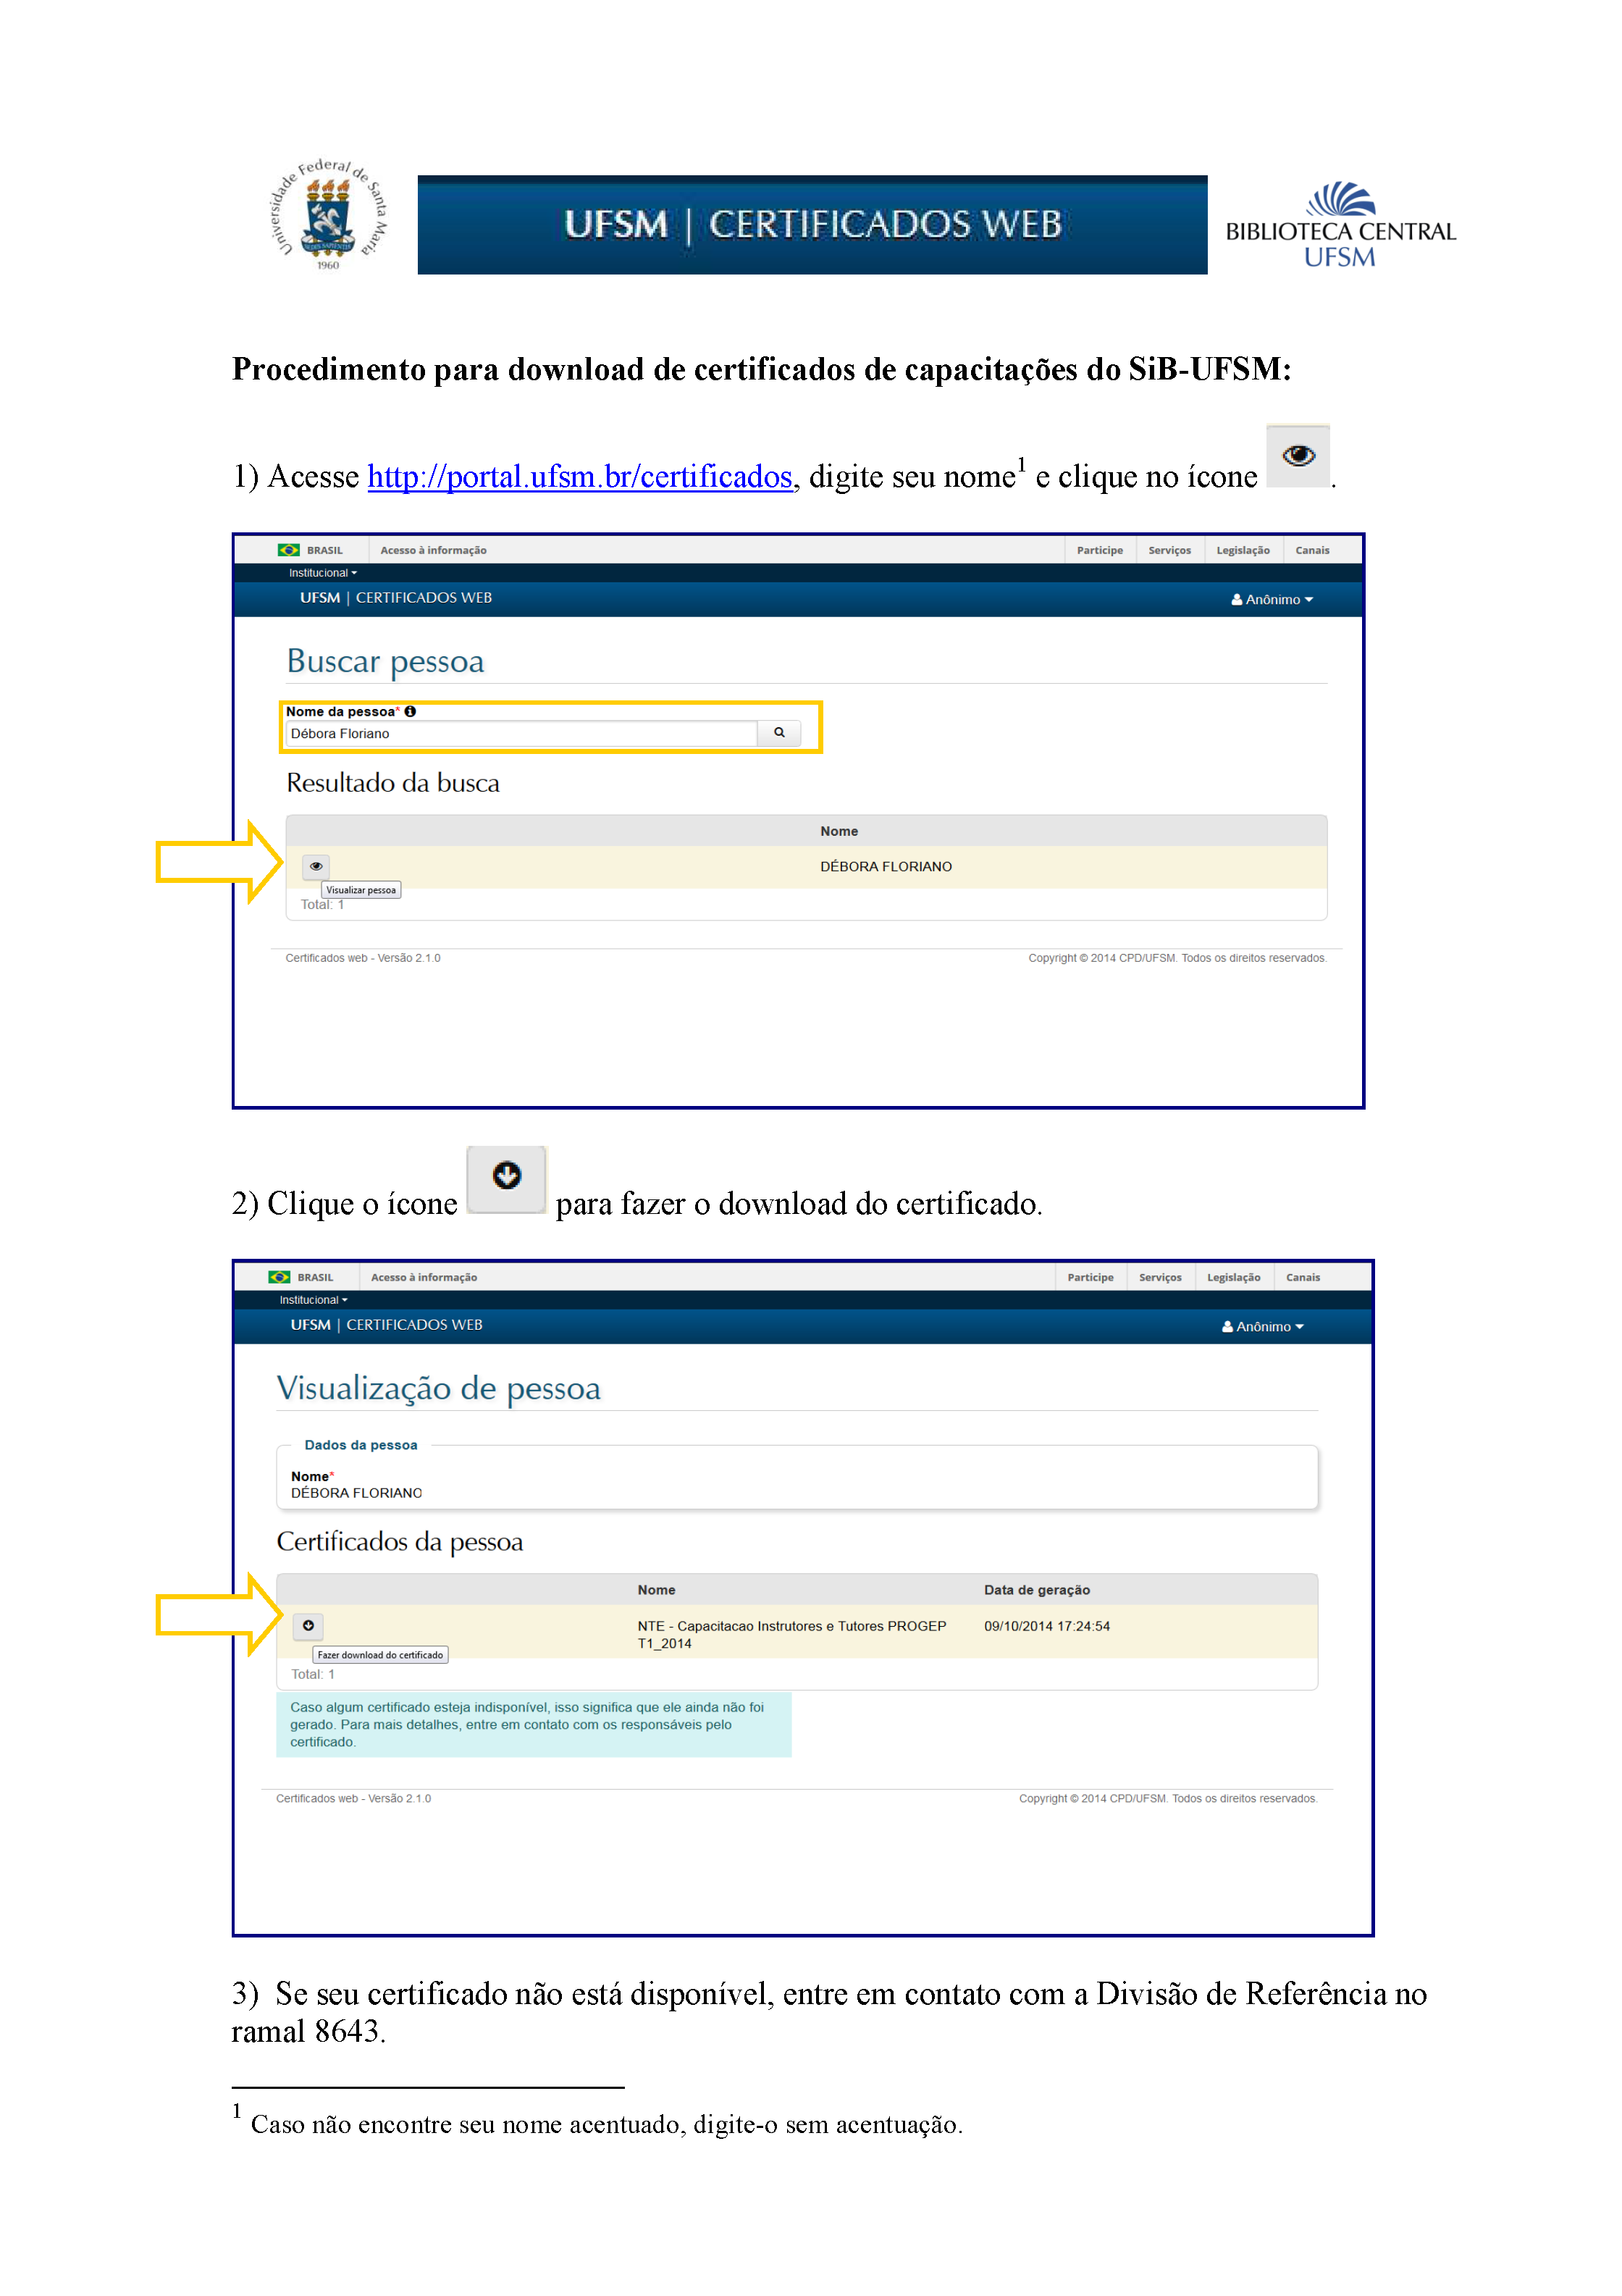 Imagem sobre procedimentos para download do certificado.